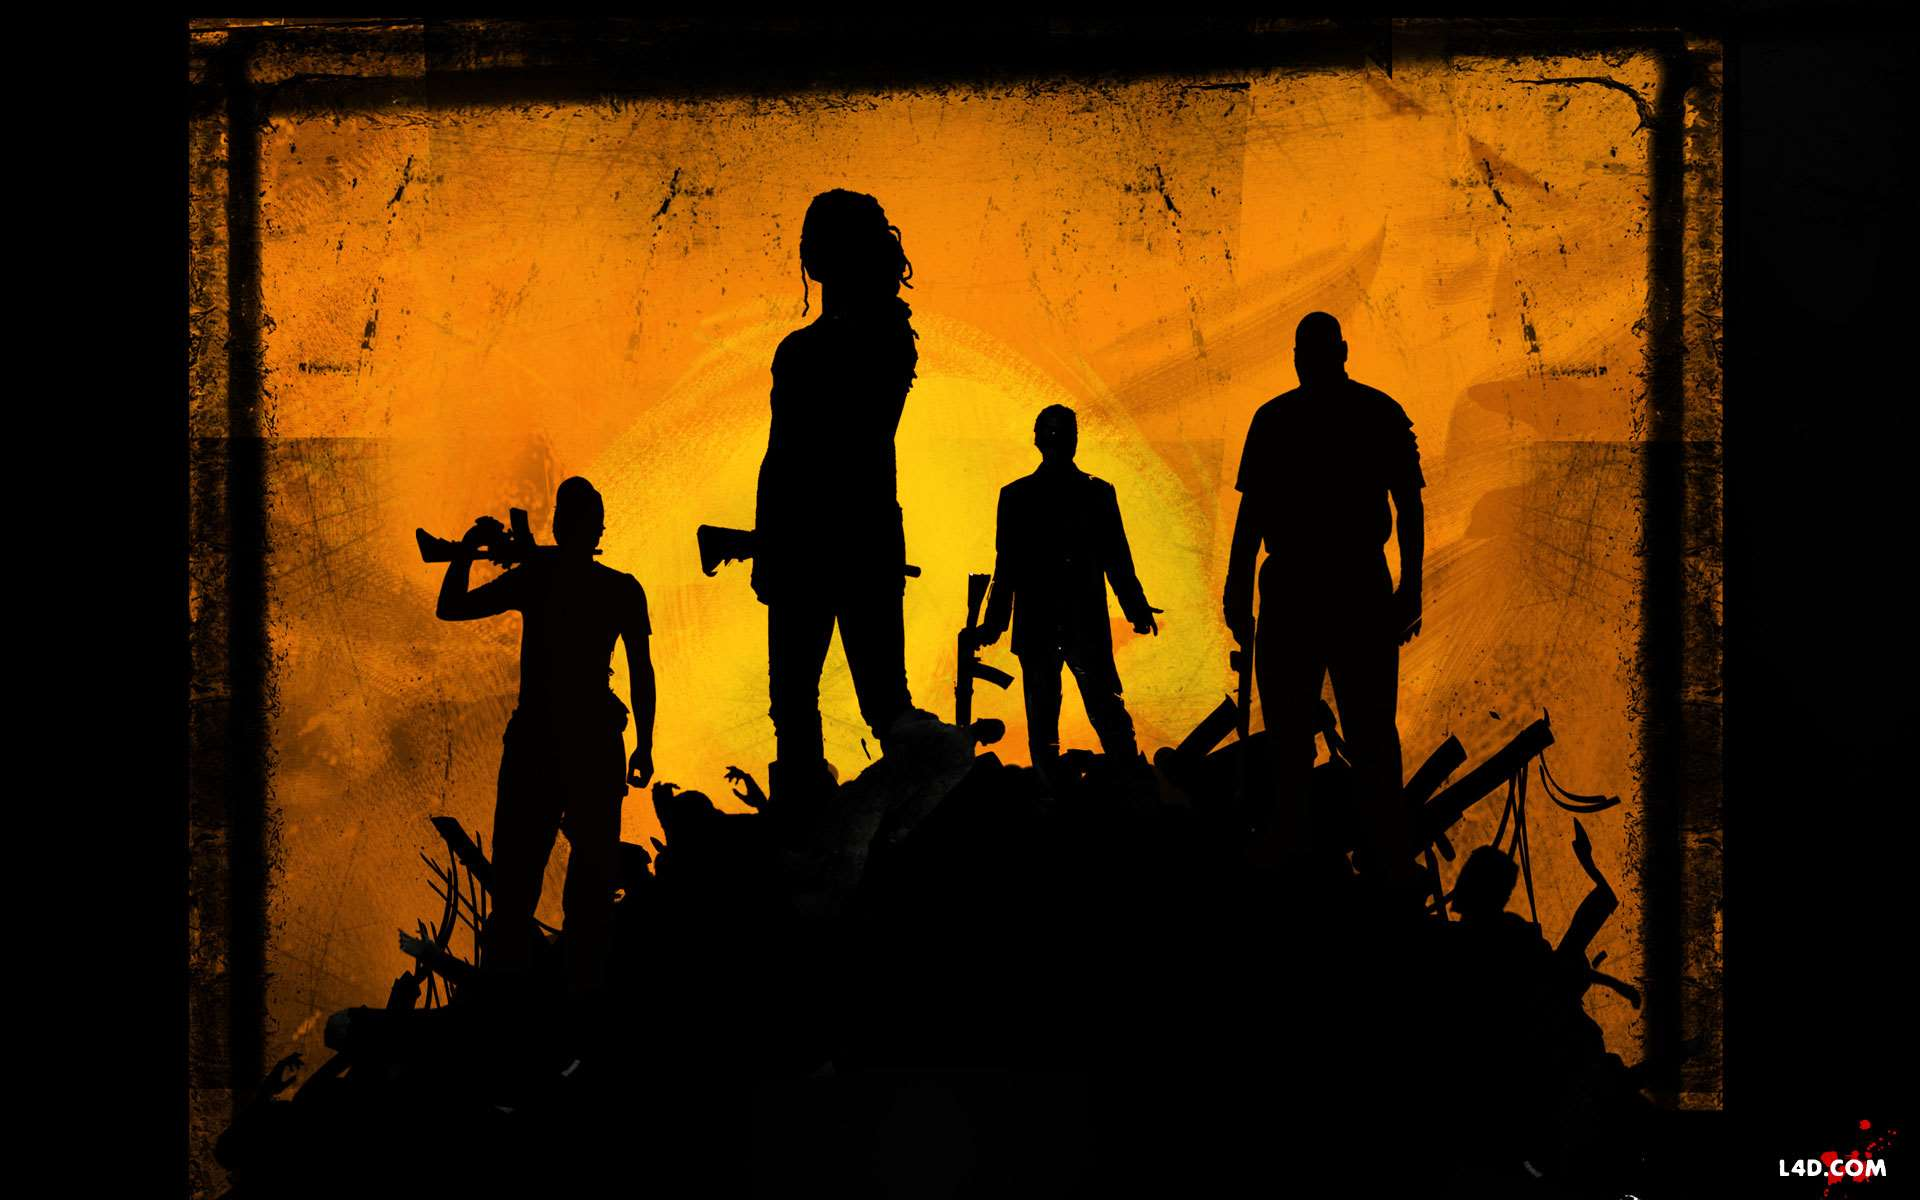 Left 4 Dead 2 Left 4 Dead 2 Wallpaper 1 Wallpaper Left 4 Dead 2